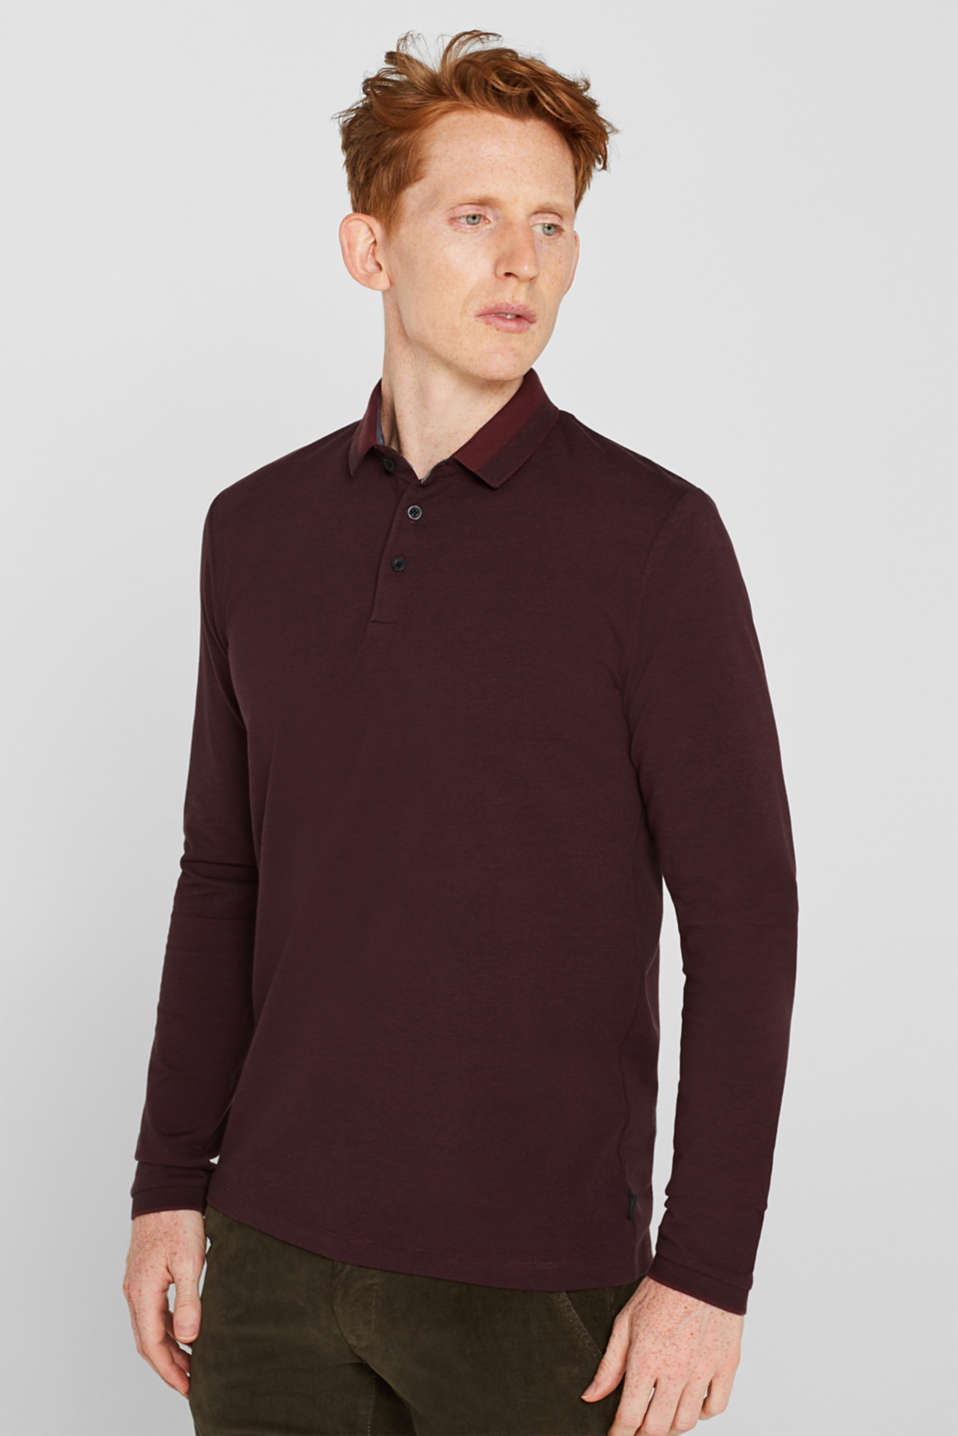 Esprit - Jersey polo shirt in blended cotton